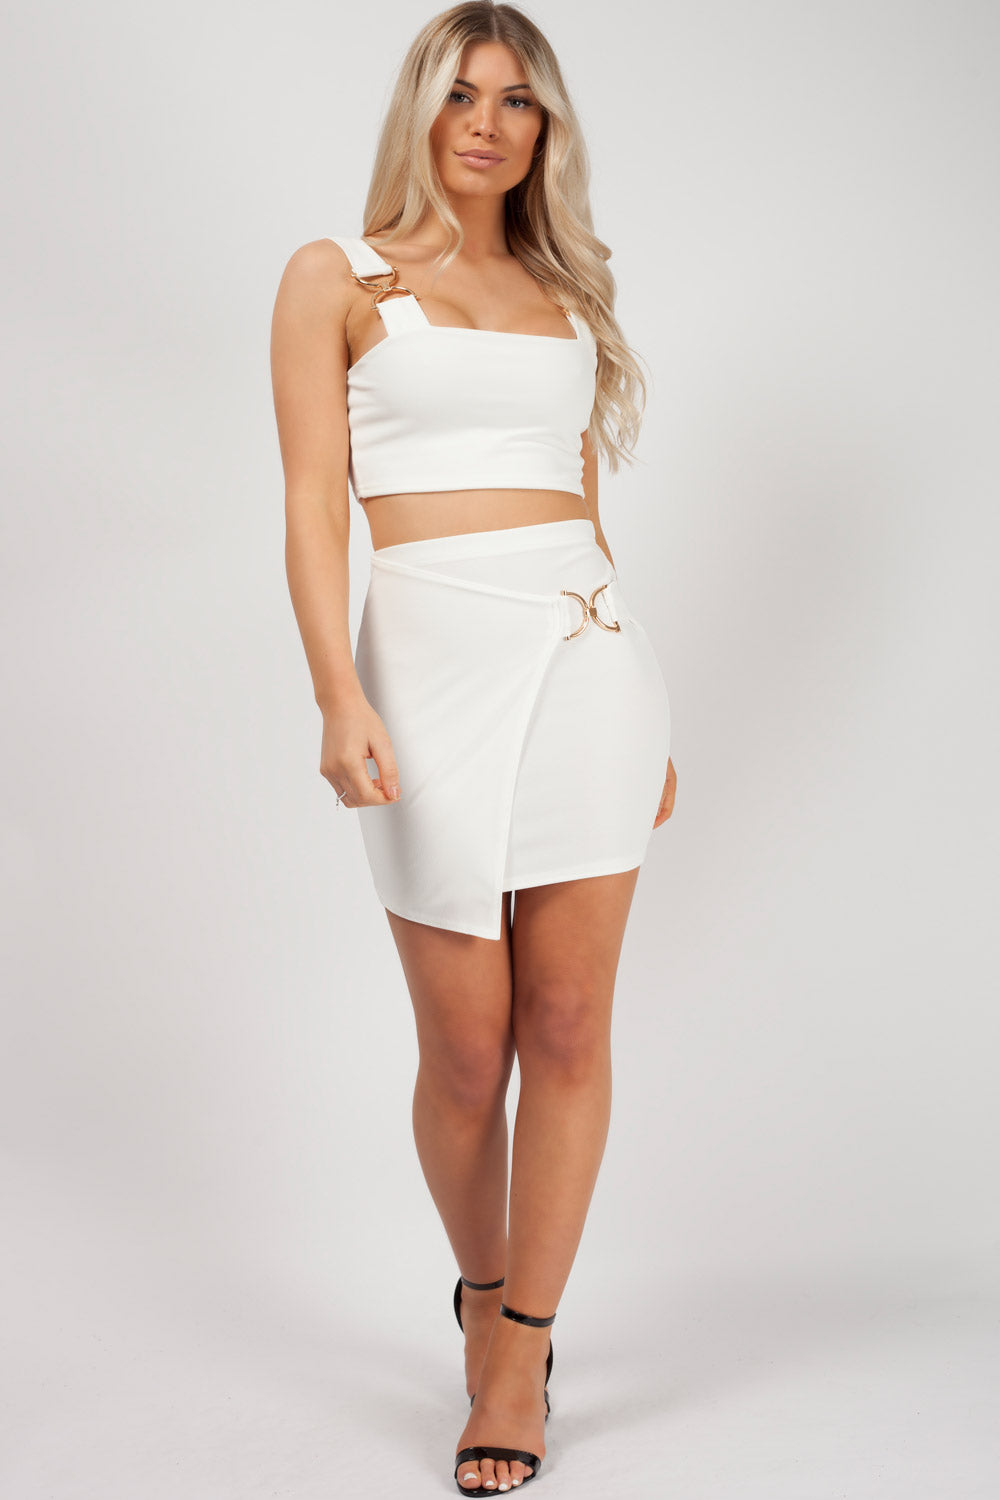 gold buckle skirt and top set